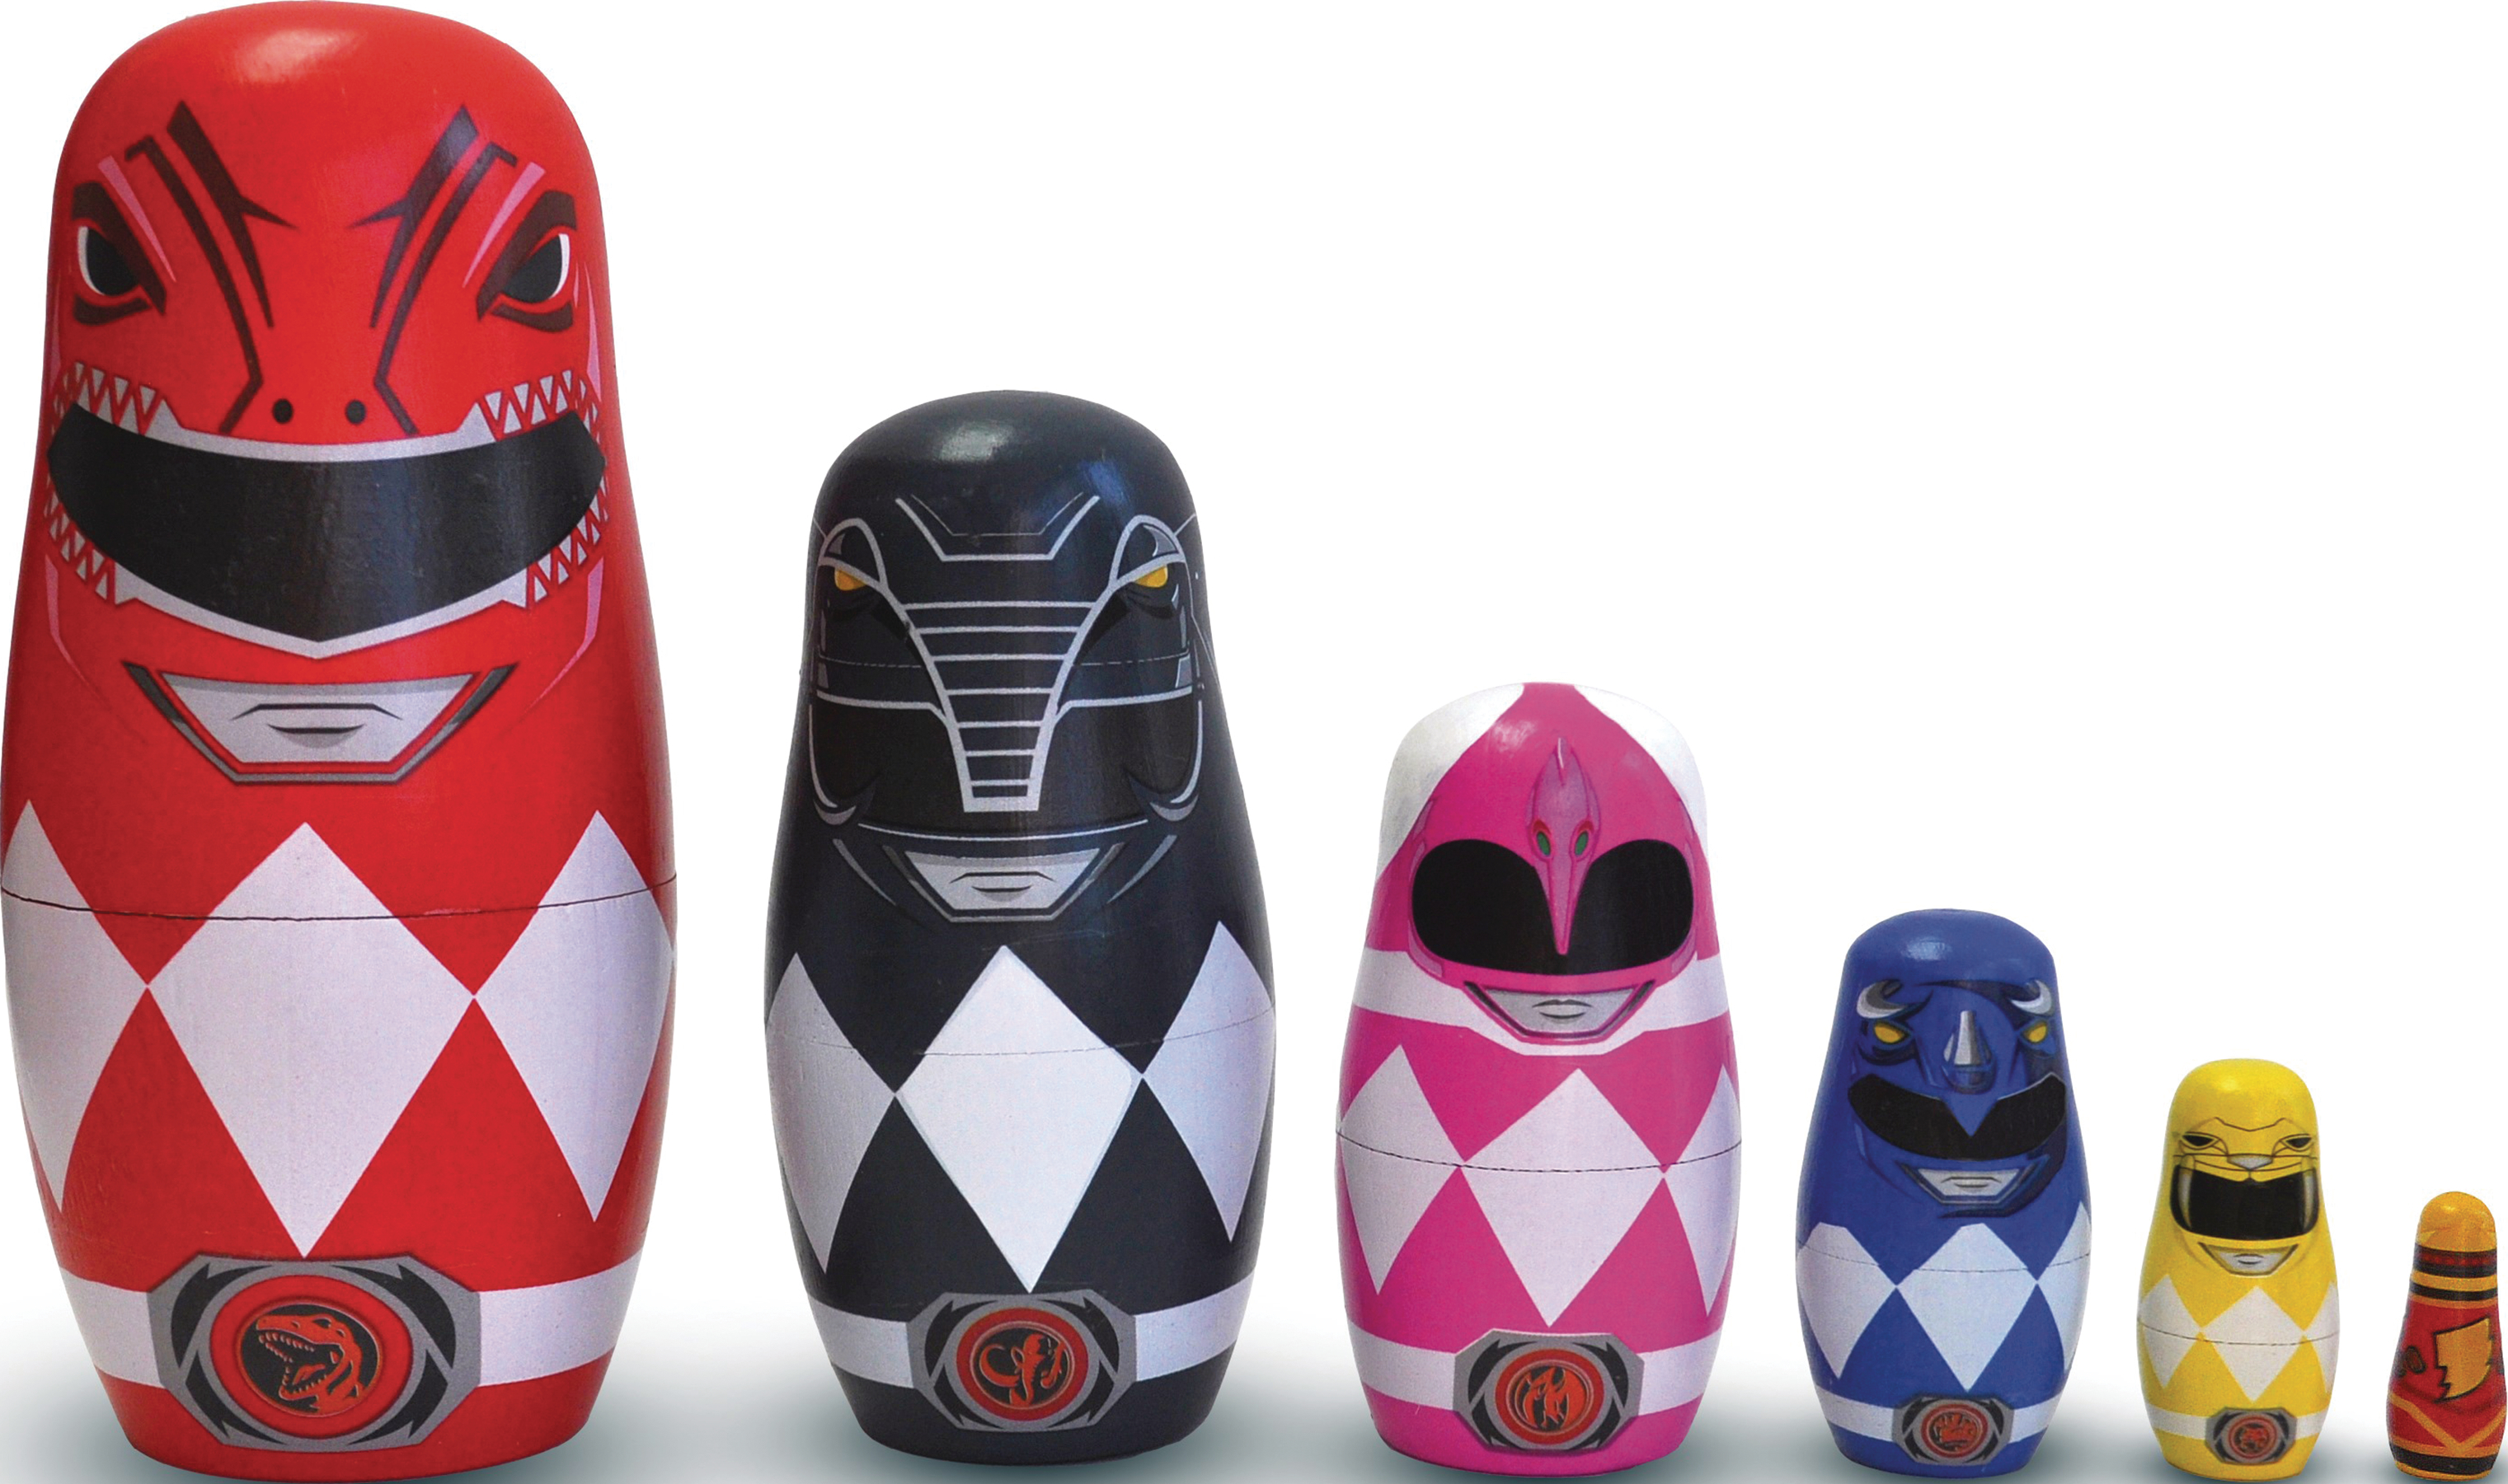 POWER RANGERS WOOD NESTING DOLL SET